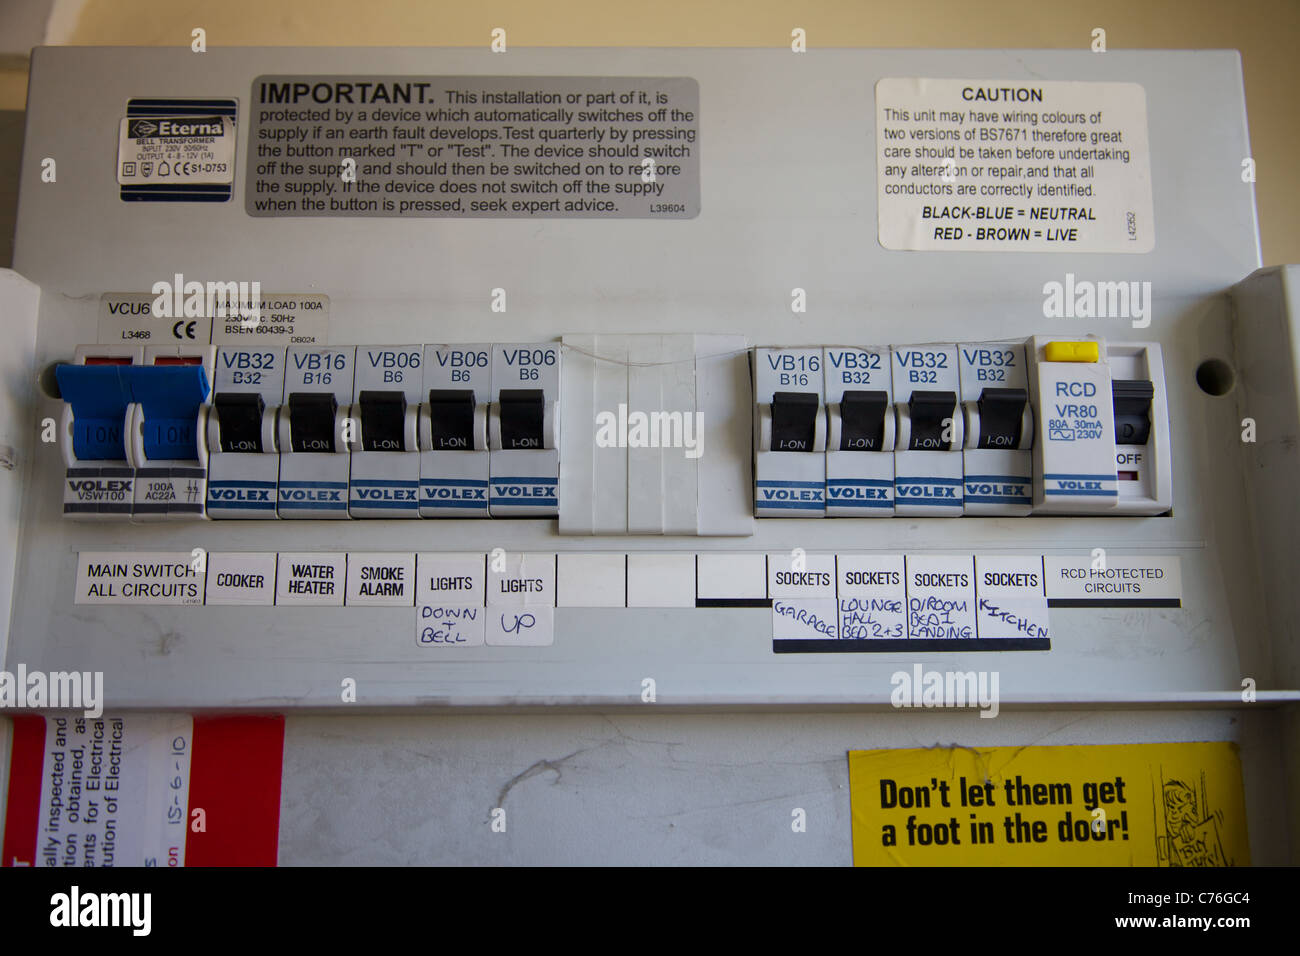 hight resolution of domestic fuse box stock photos domestic fuse box stock images alamy domestic fuse box regulations domestic fuse box